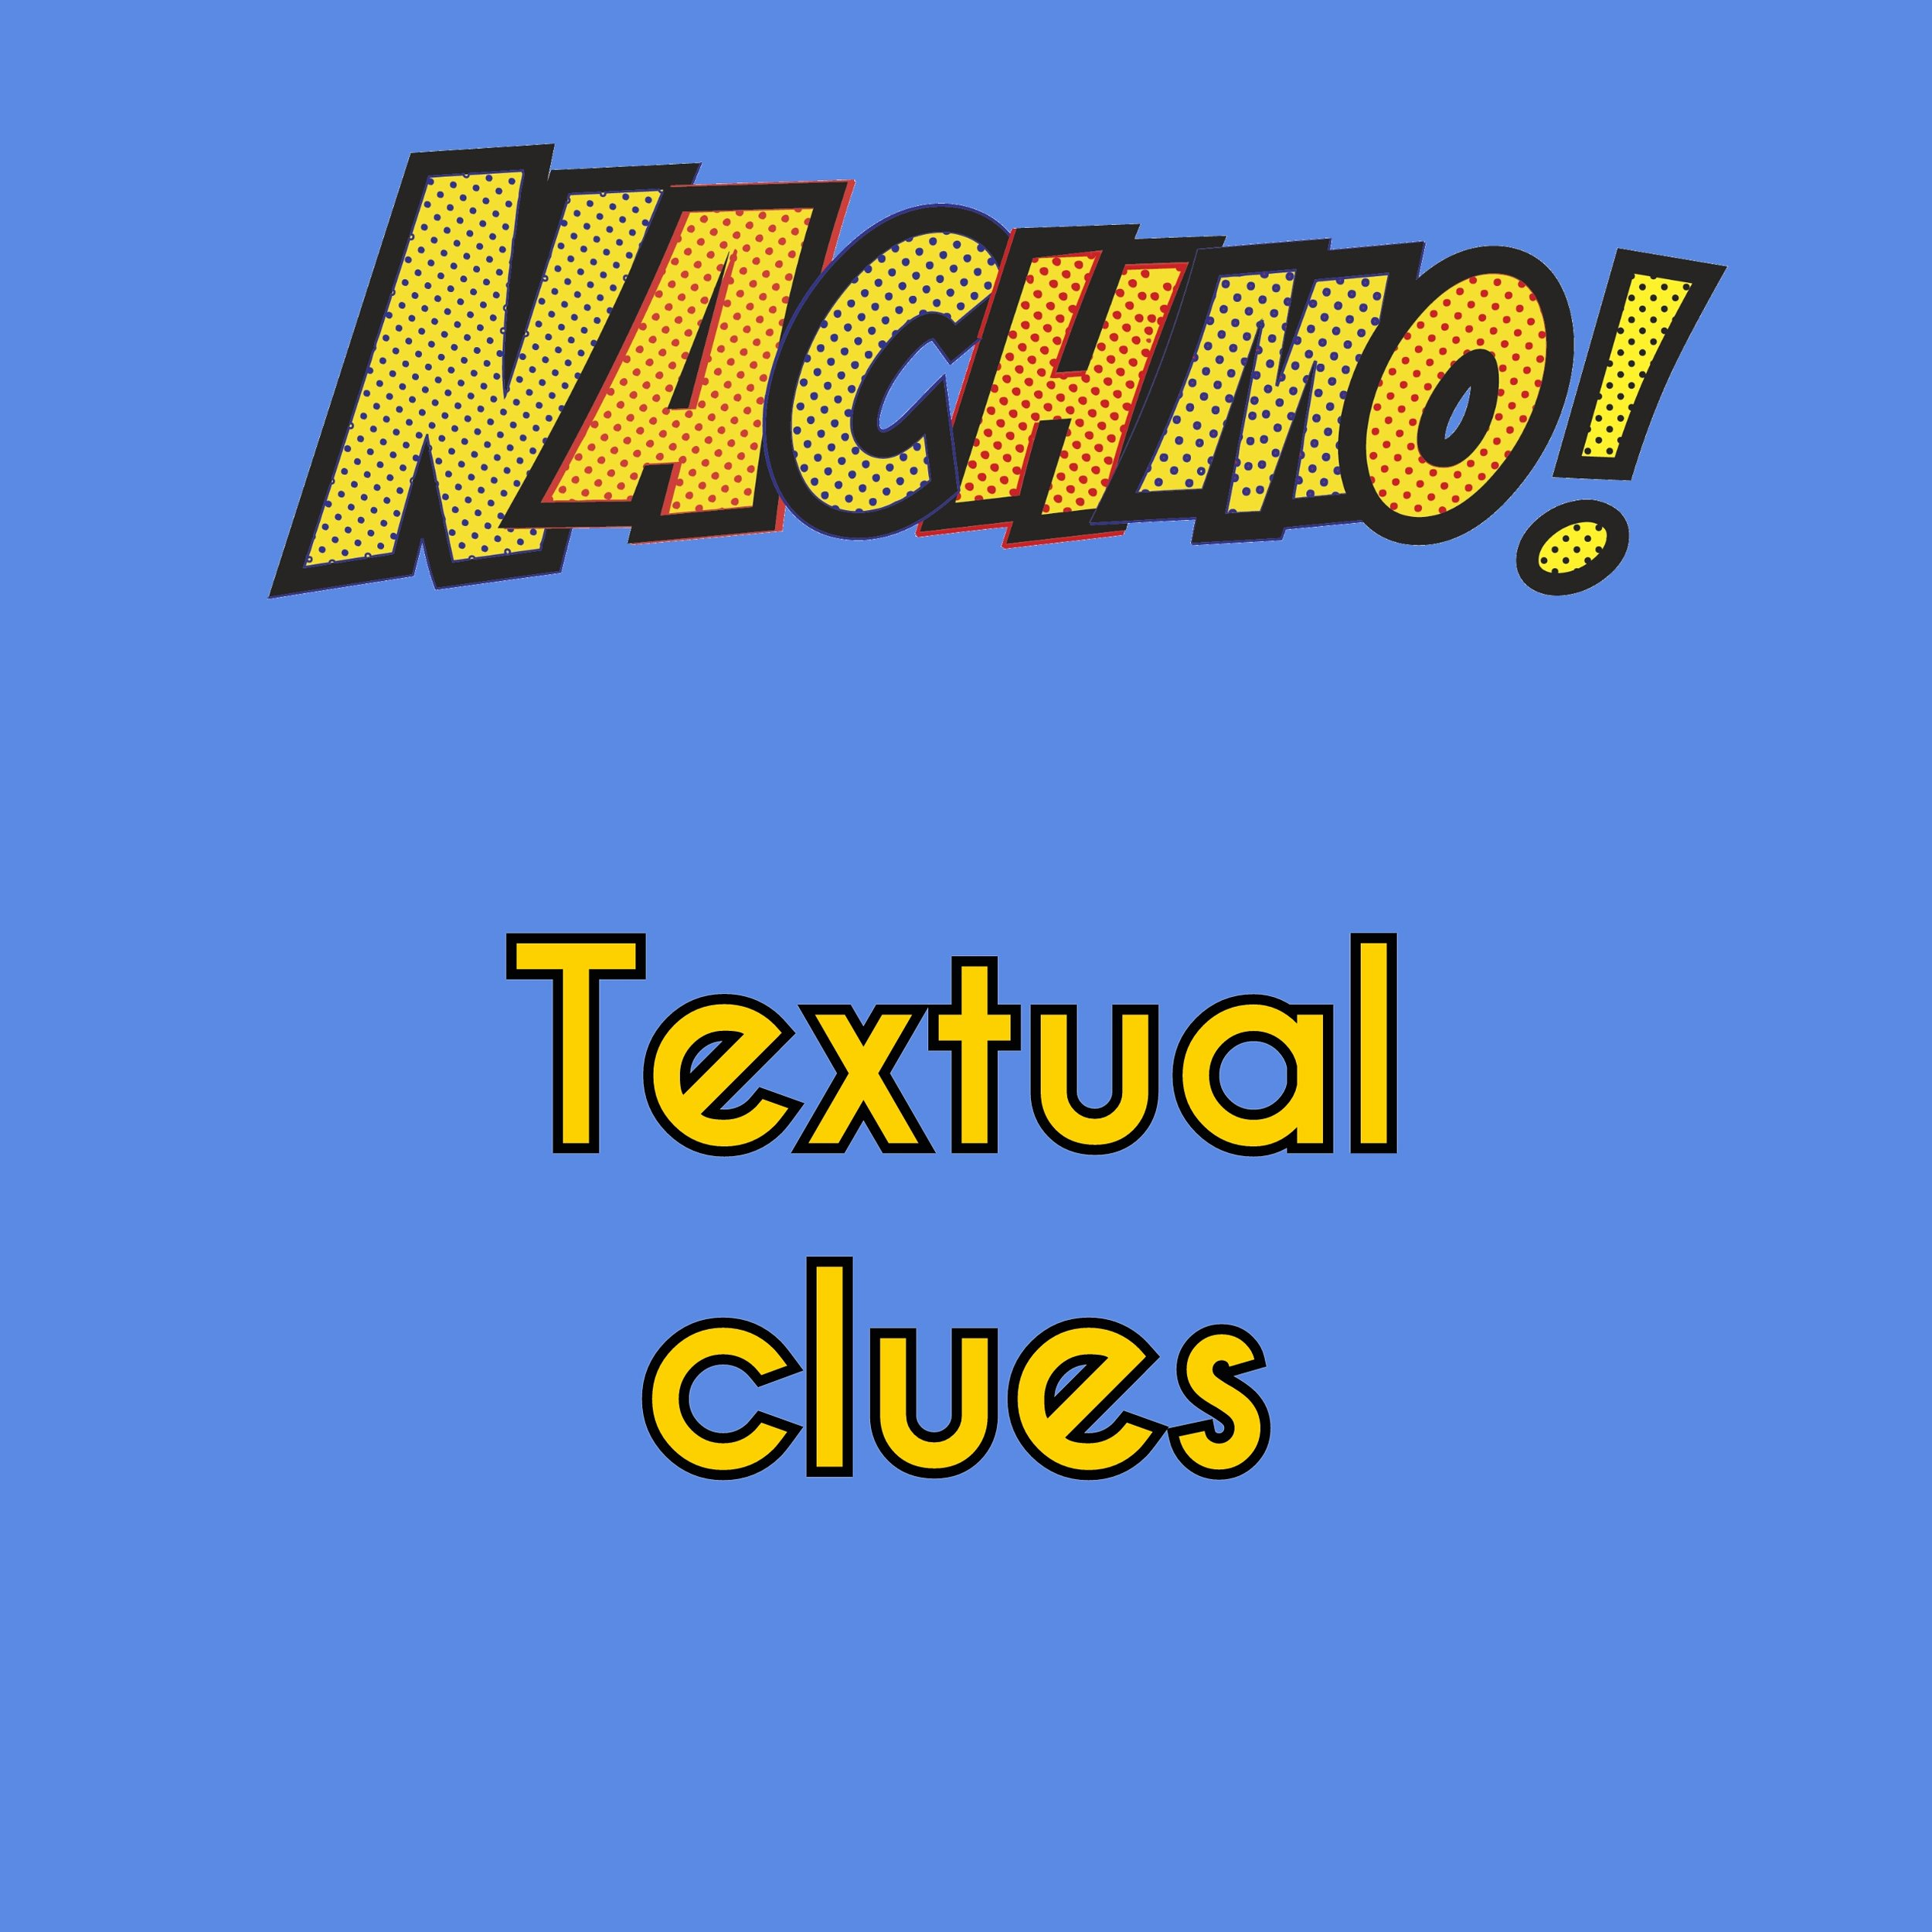 Jan 10: Textual Clues - Prompt: Find a written phrase or audio recording and work movement into it.Plus: Think about ways to incorporate text into one of your phrases: say it, project it, record it, etc.Lens: Practice recording sound, including speaking while moving on camera.